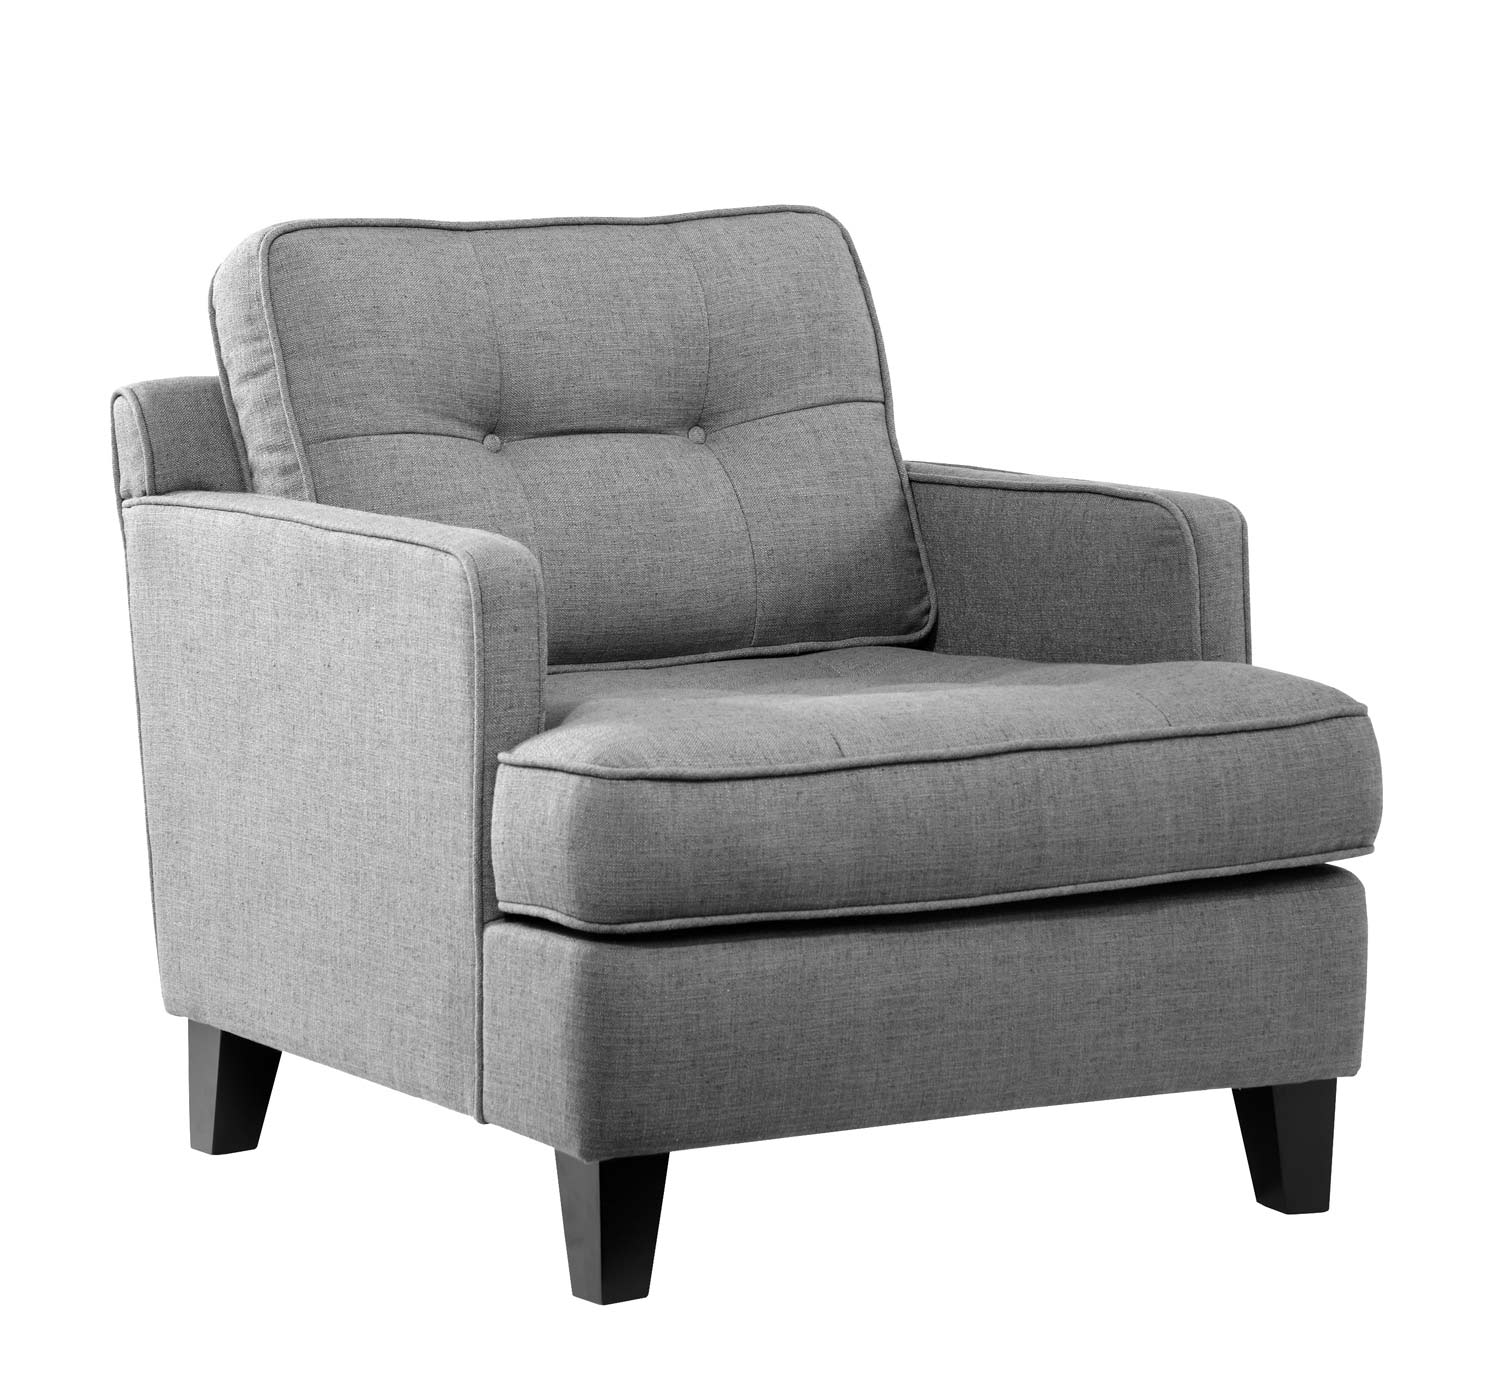 Armen Living Eden Arm Chair - Cement Gray Fabric